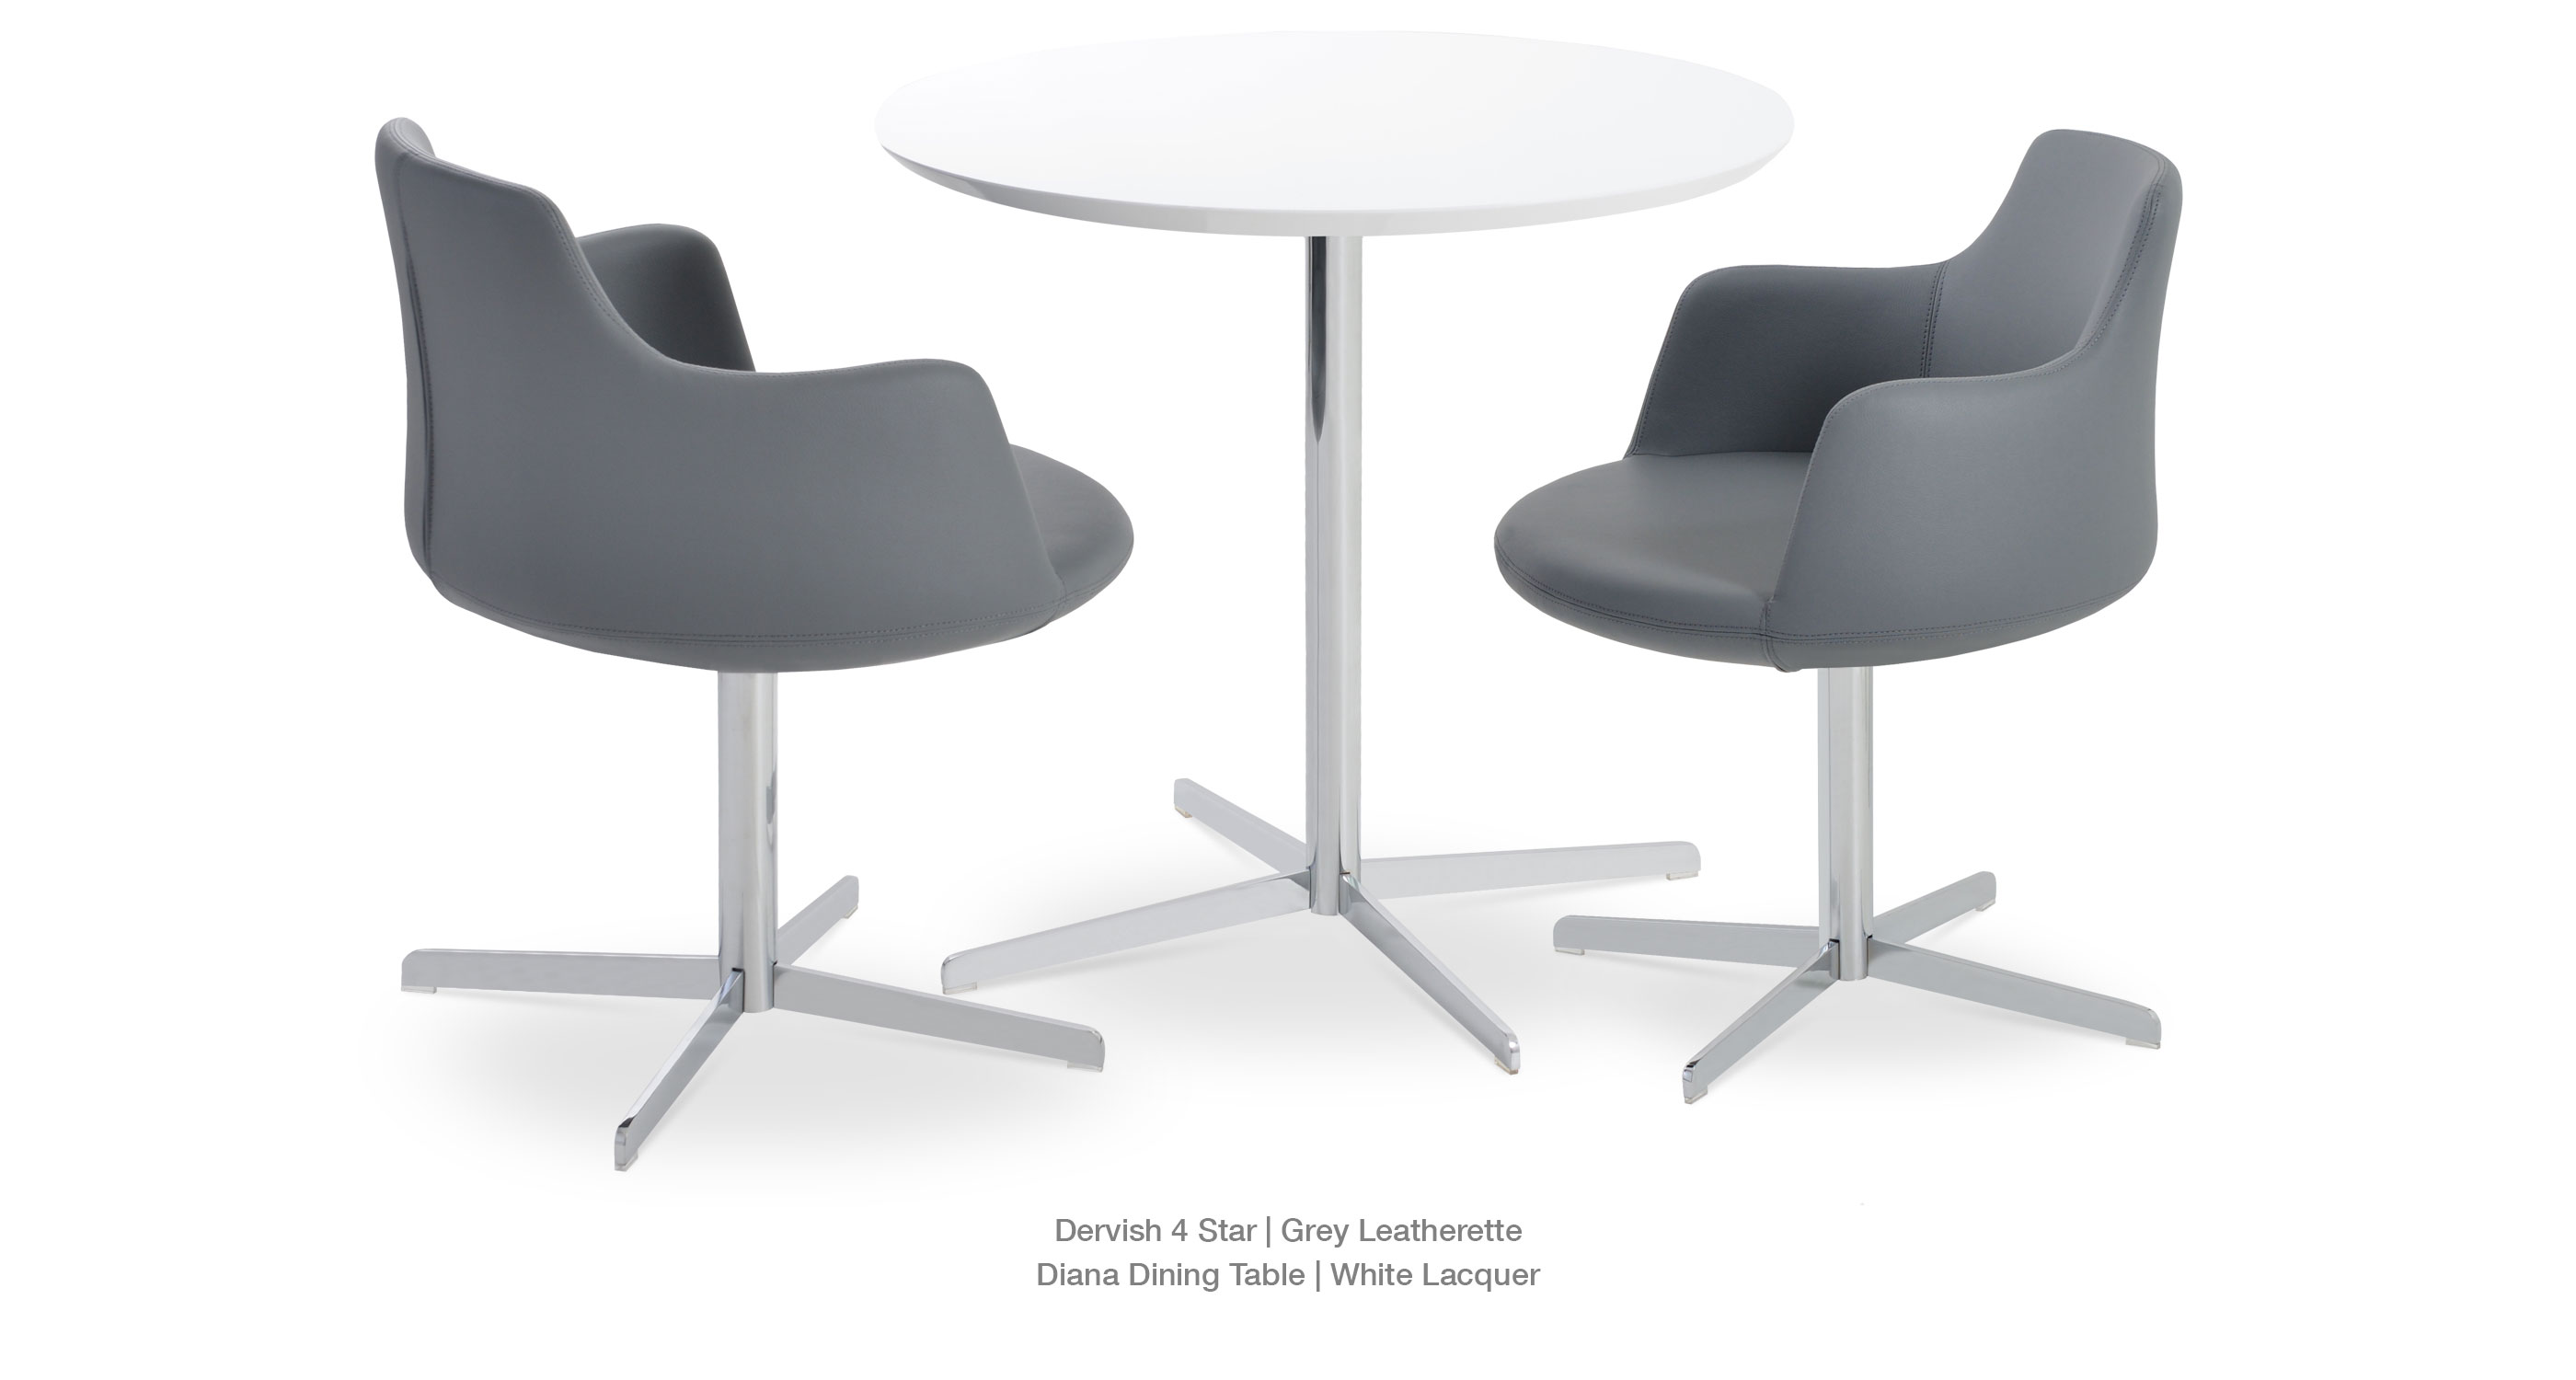 Dervish 4 Star Grey Leatherette Diana Table